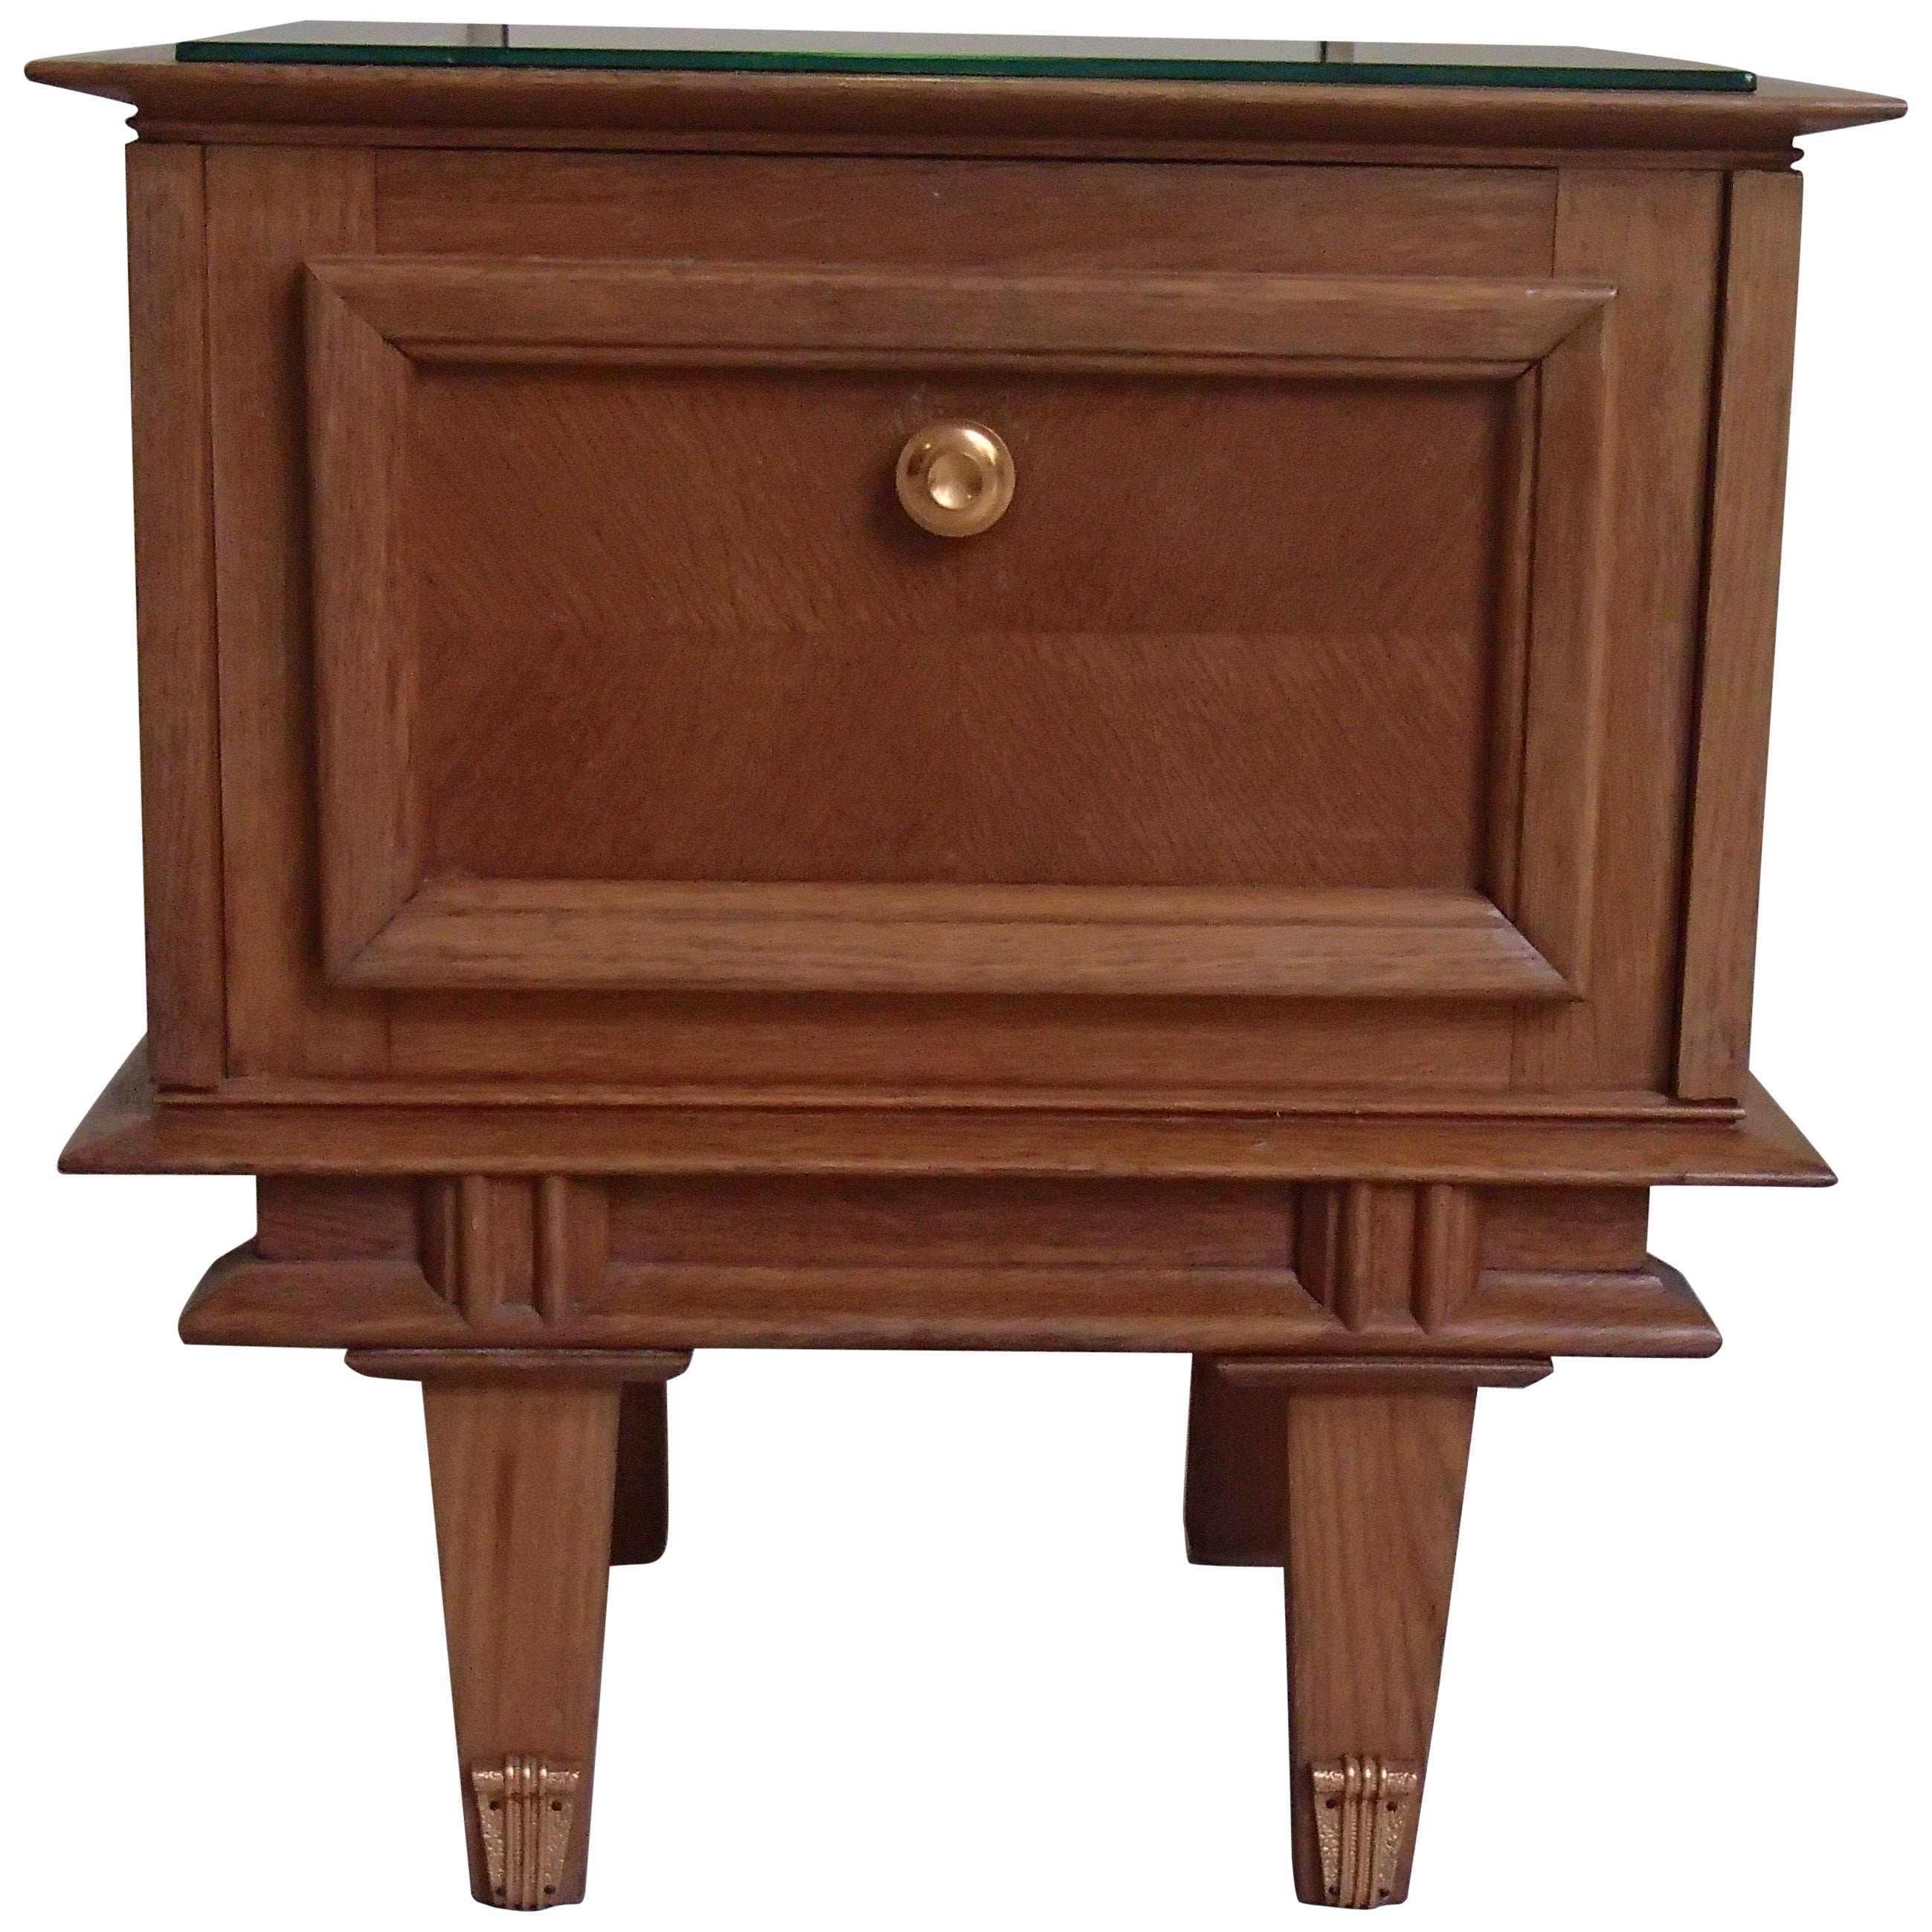 1940s Side Table or Nightstand Oak and Brass Decor